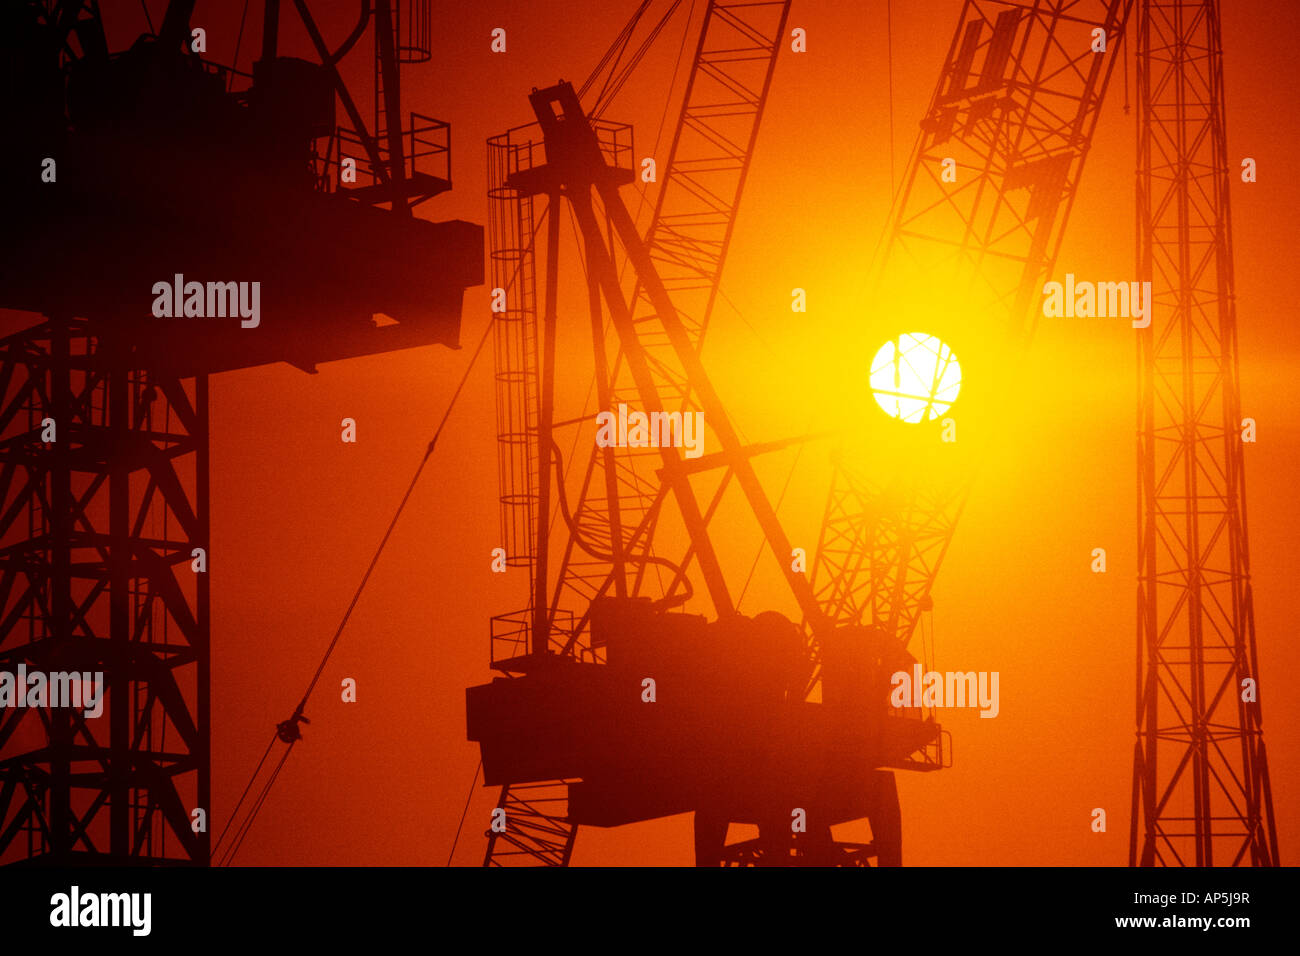 Construction tower cranes at sunset. - Stock Image